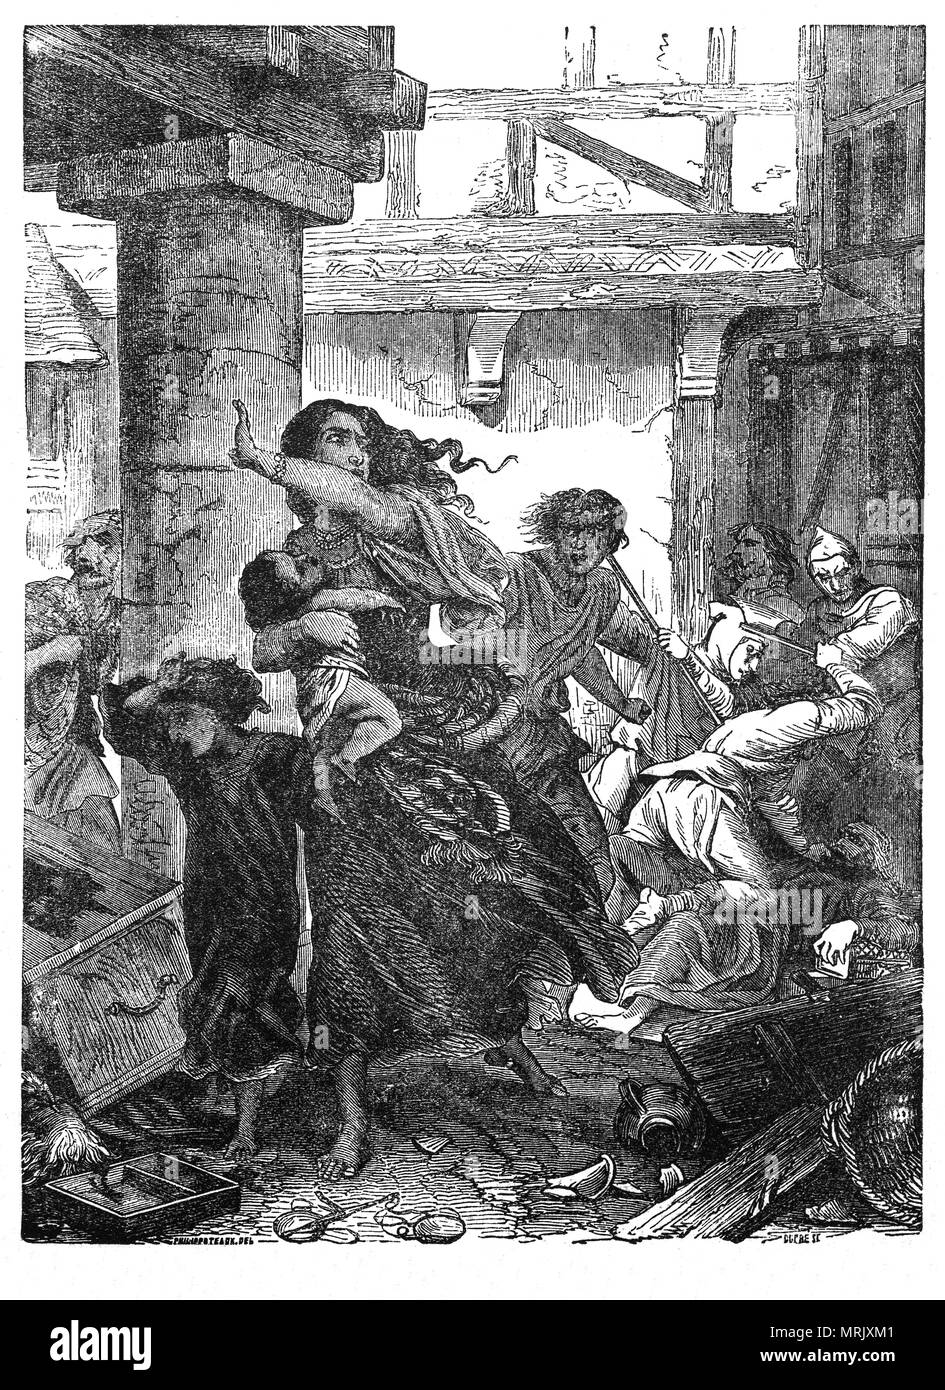 The massacre of Jews during the coronation of King Richard I at Westminster Abbey on 3 September 1189. Richard barred all Jews from the investiture and when a rumour spread that Richard had ordered all Jews to be killed, the people of London attacked the Jewish population. Realising that the assaults could destabilise his realm on the eve of his departure on crusade, Richard distributed a royal writ demanding that the Jews be left alone and ordered the execution of those responsible for the most  murders and persecutions. - Stock Image